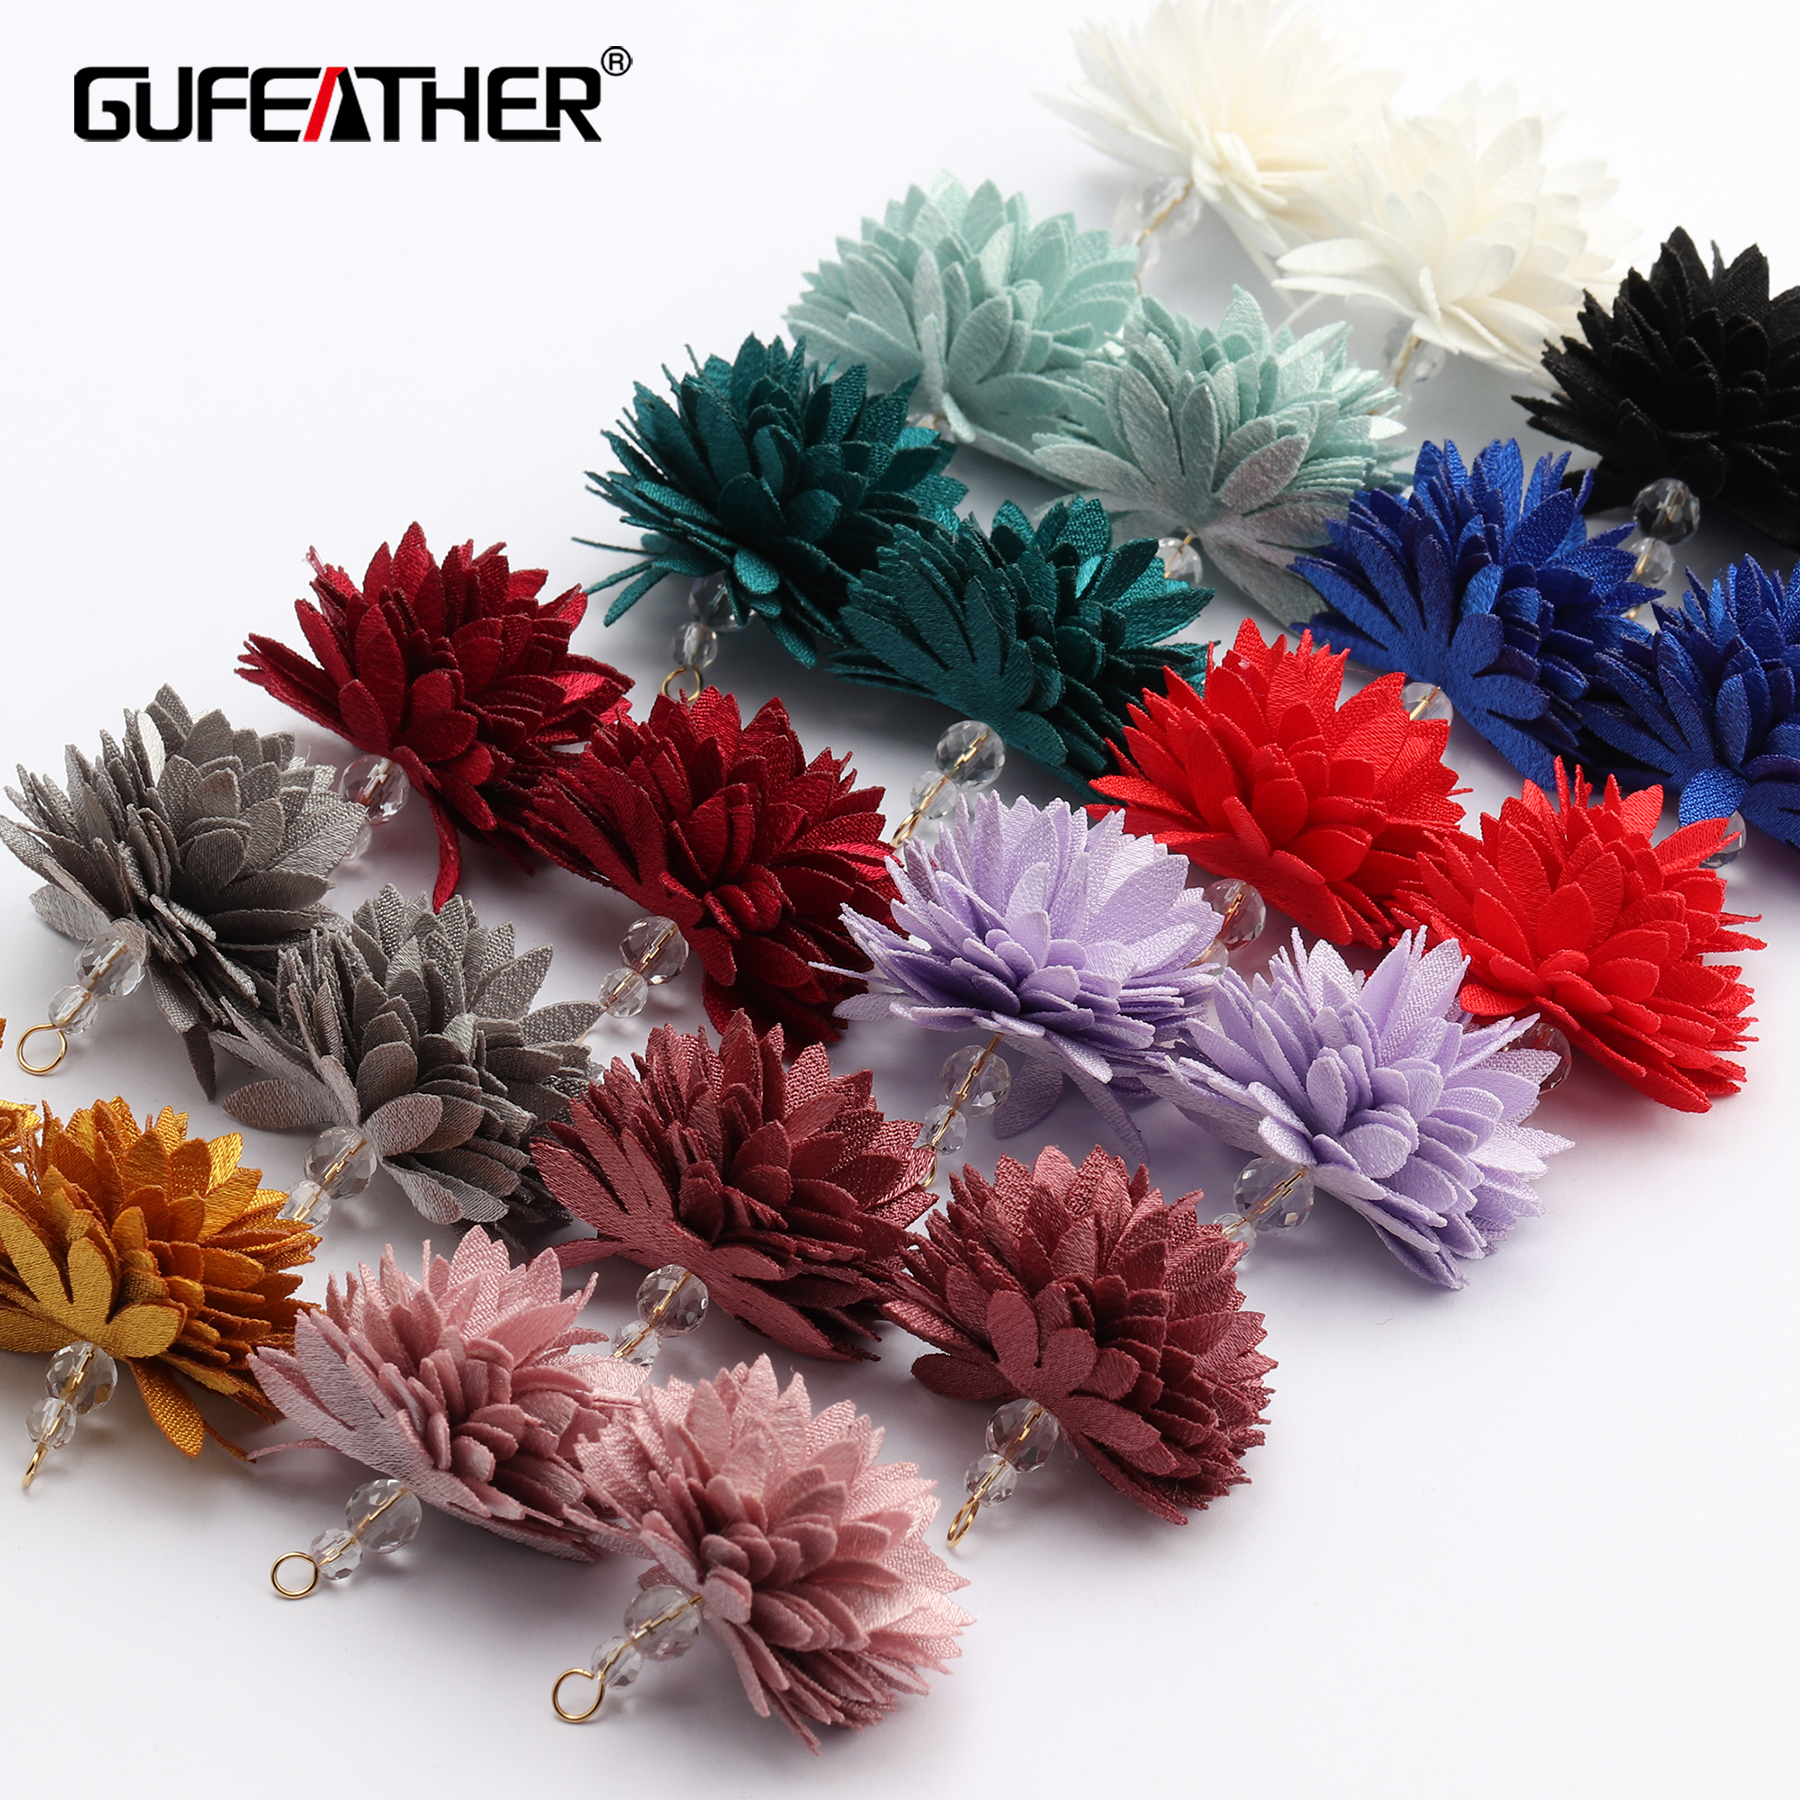 GUFEATHER M646,jewelry Accessories,diy Flower Pendant,ball Shape,hand Made,flower Ball,diy Earring,jewelry Making,10pcs/lot